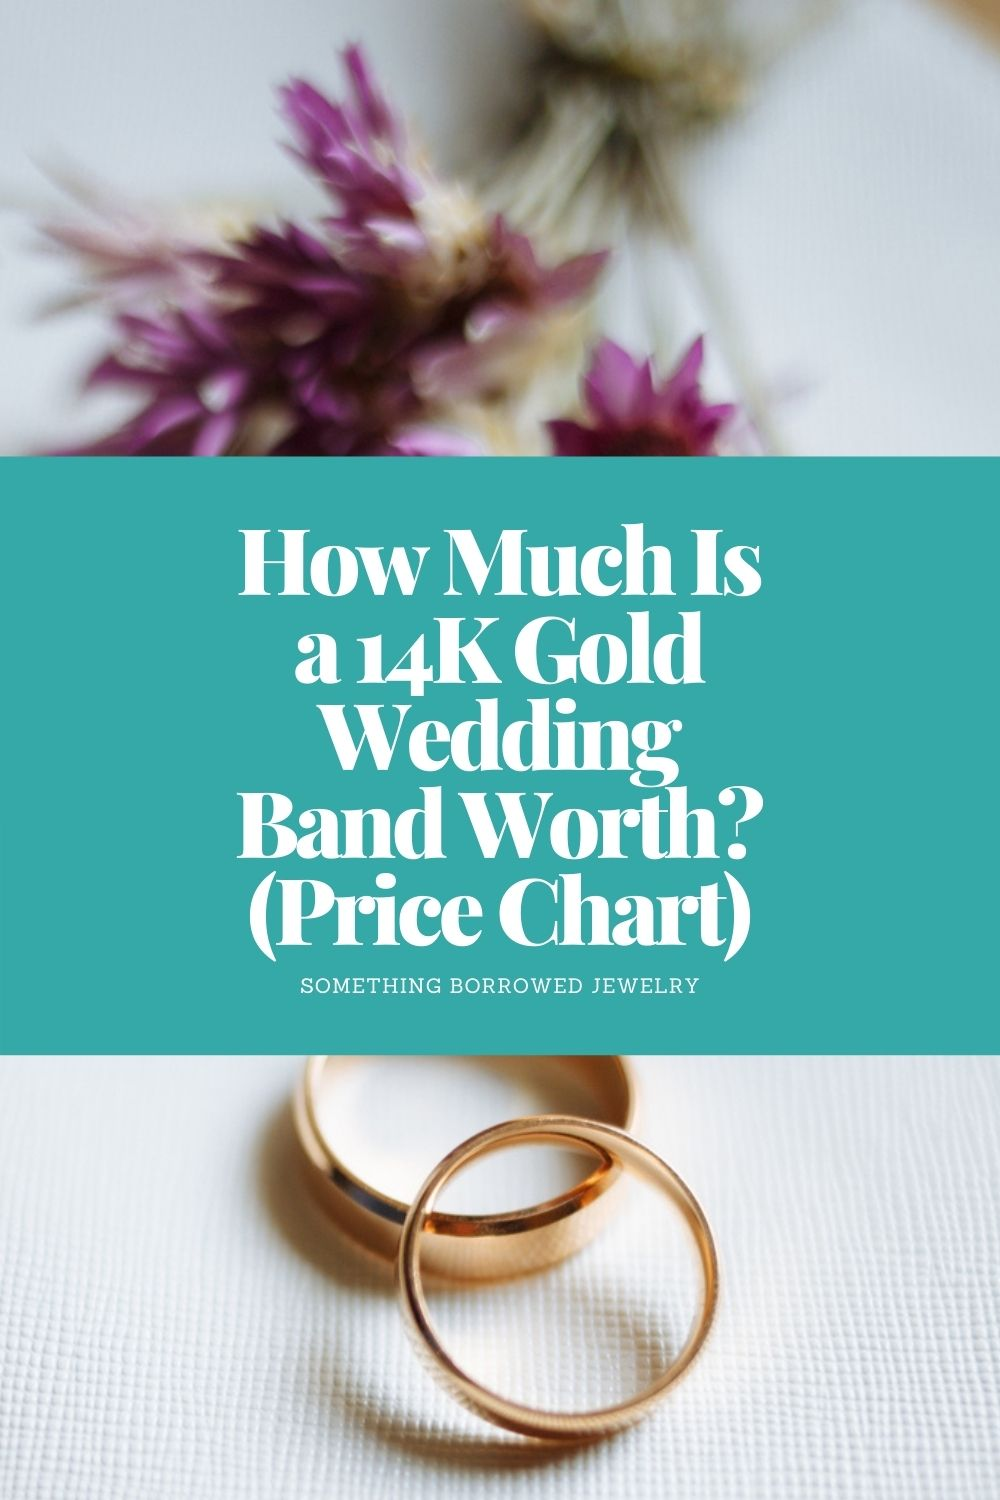 How Much Is a 14K Gold Wedding Band Worth (Price Chart) pin